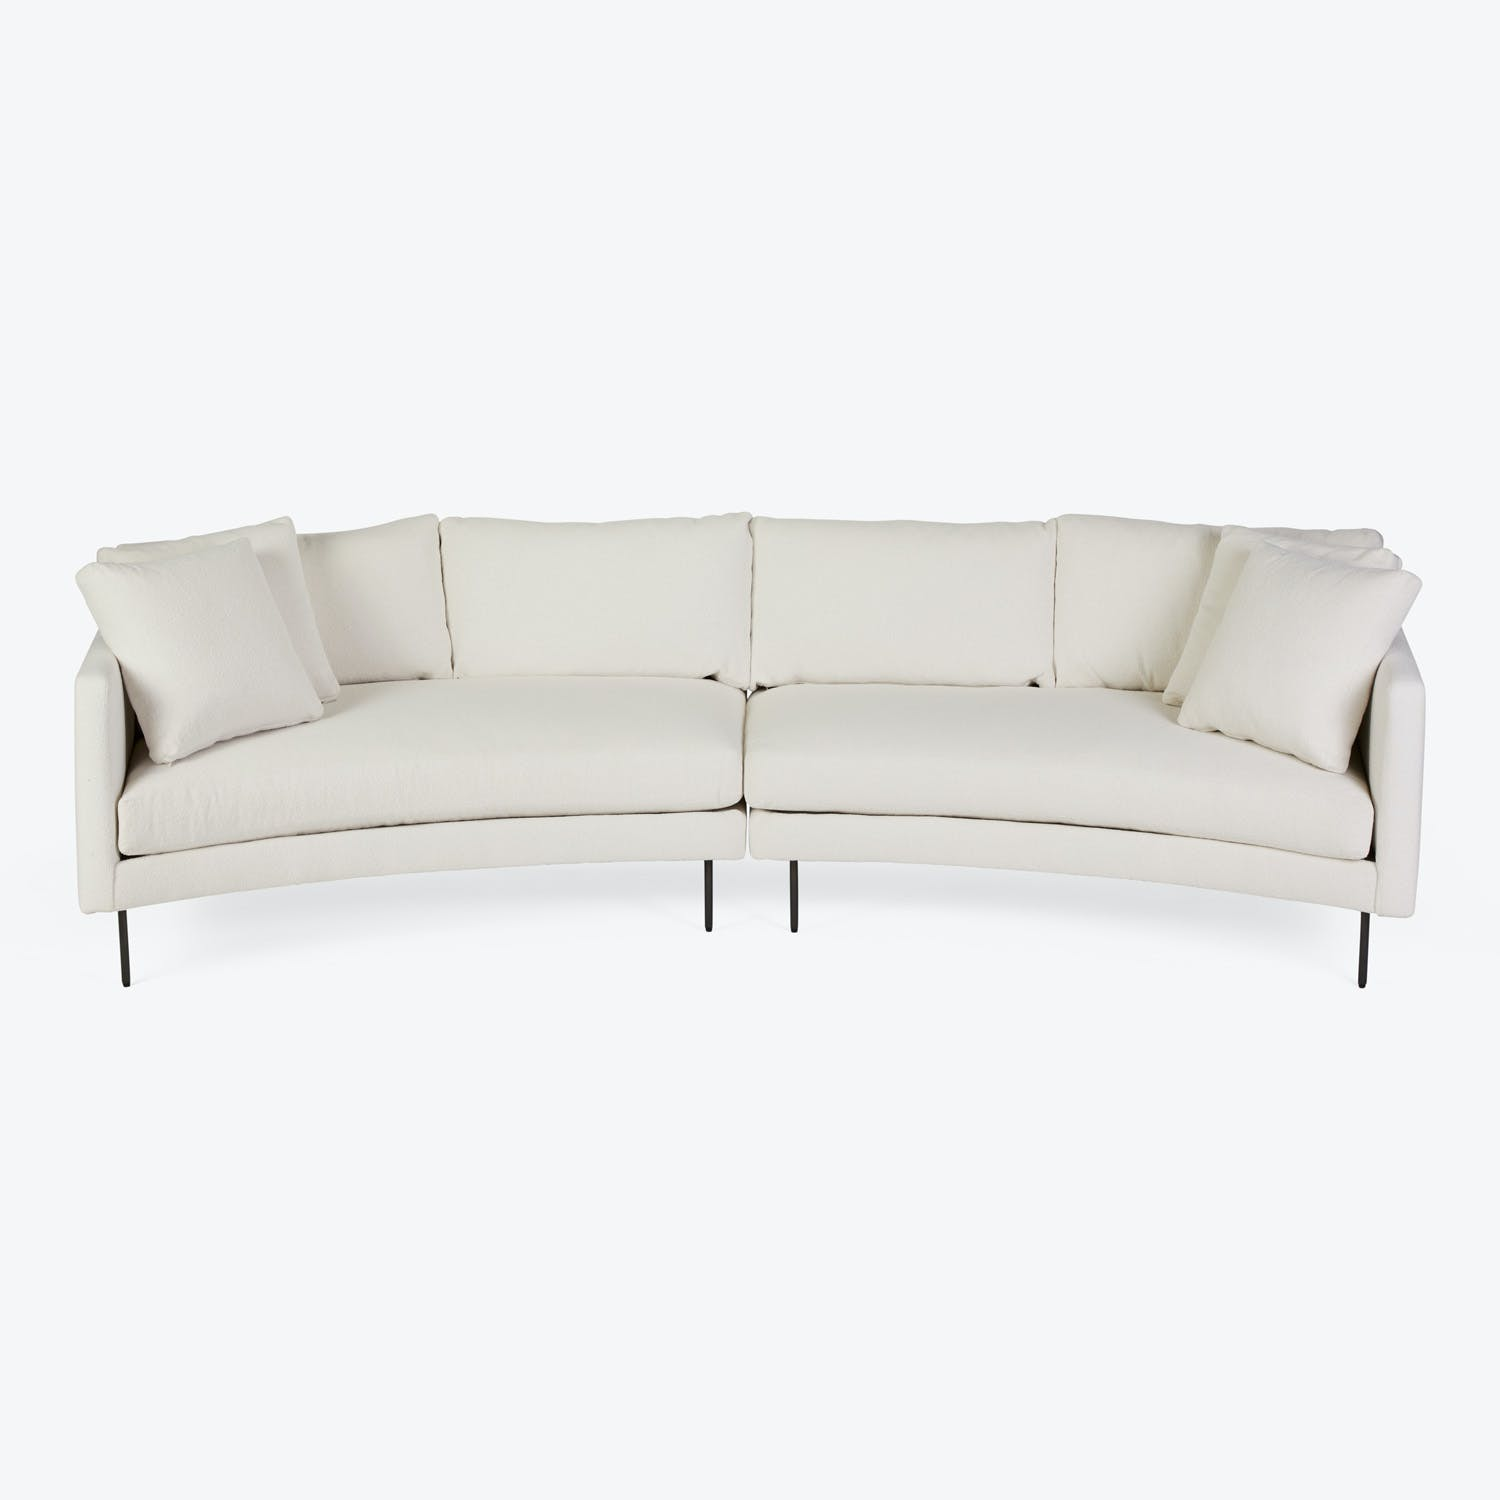 Product Image - Slice Curved 2-Piece Sofa